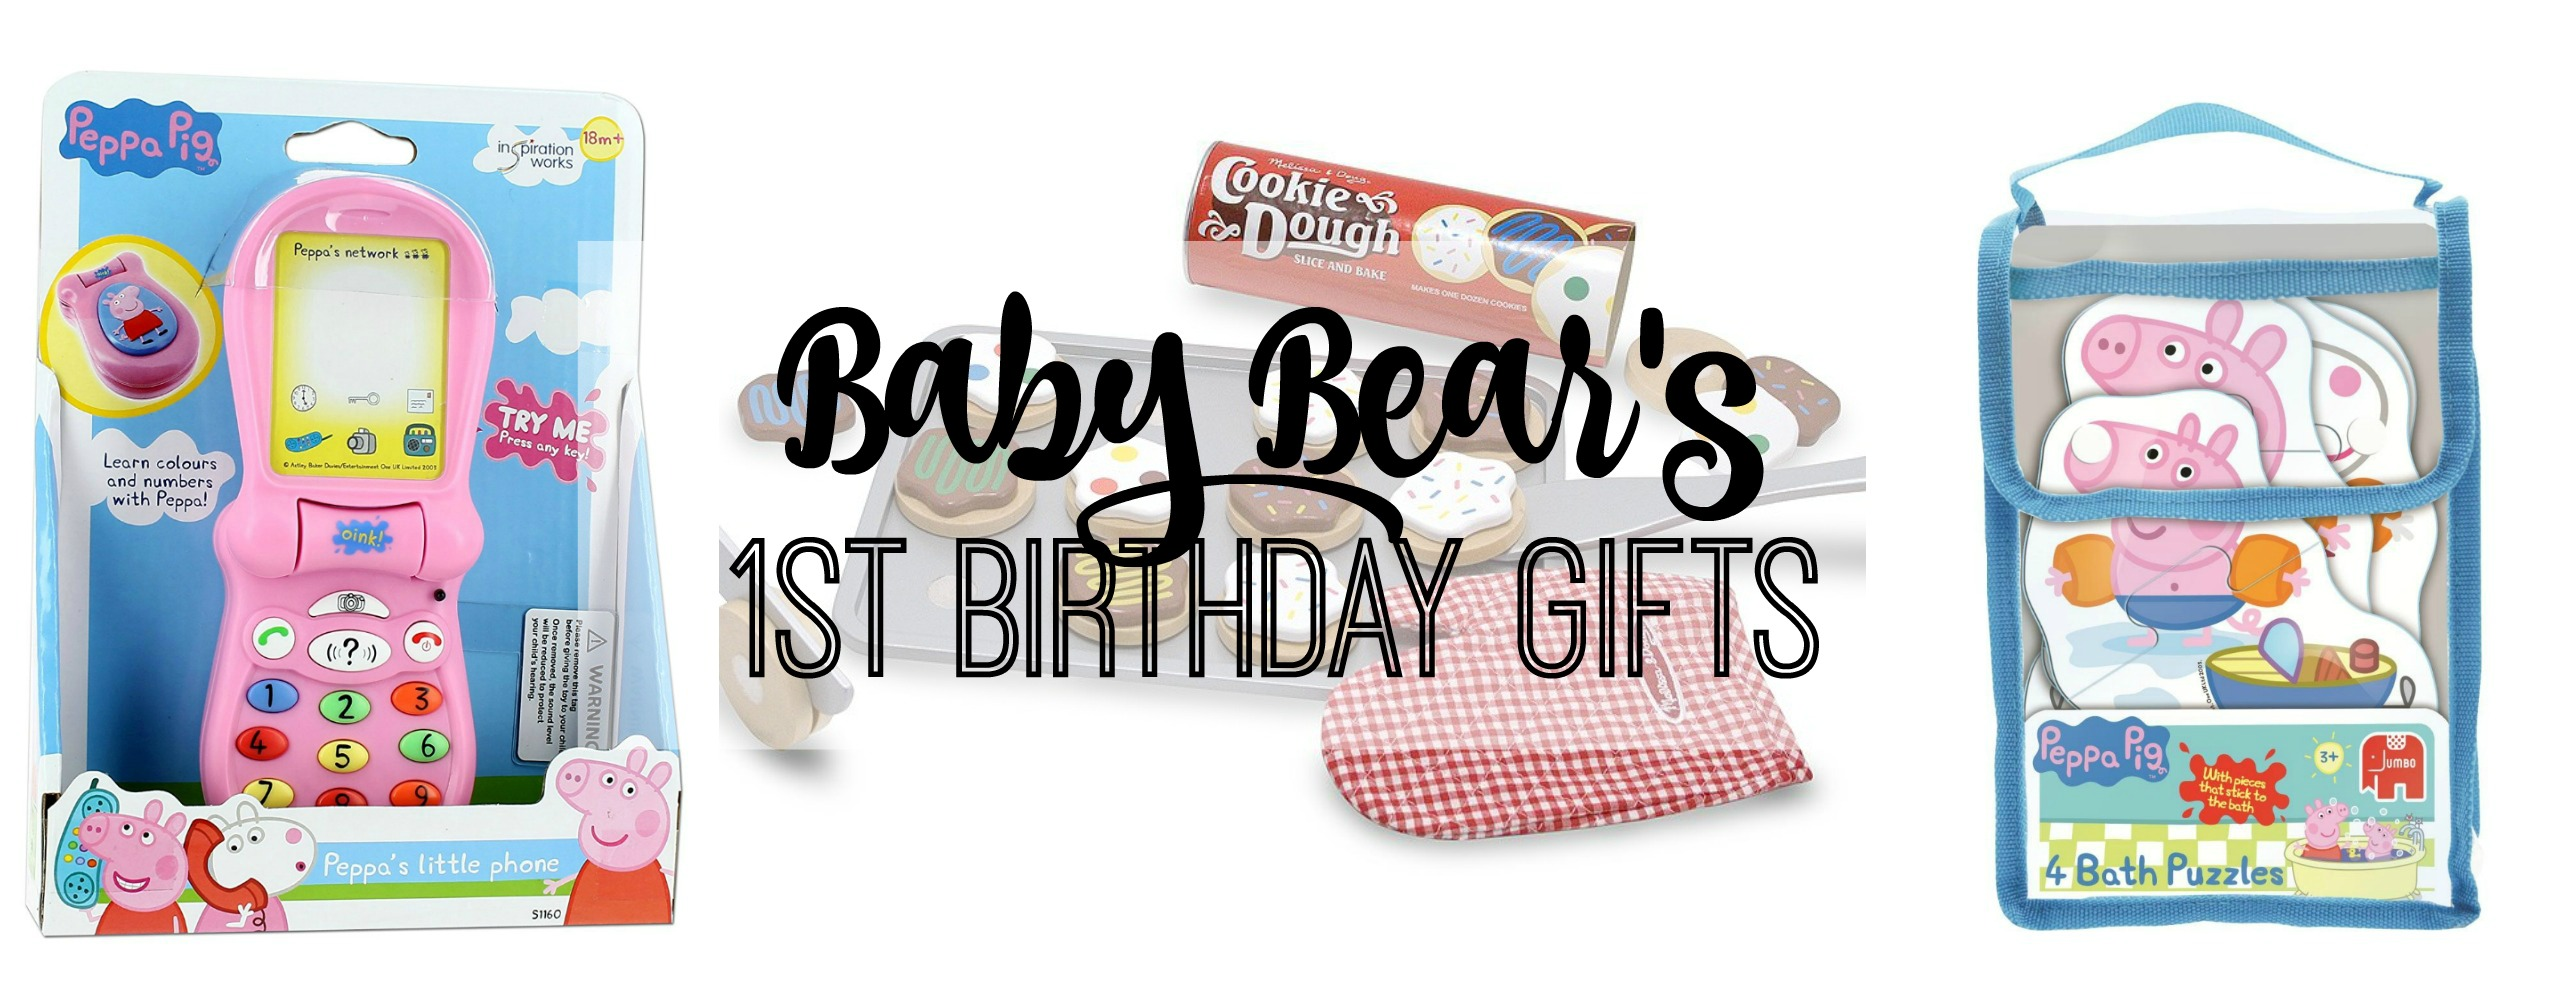 1st birthday gifts title